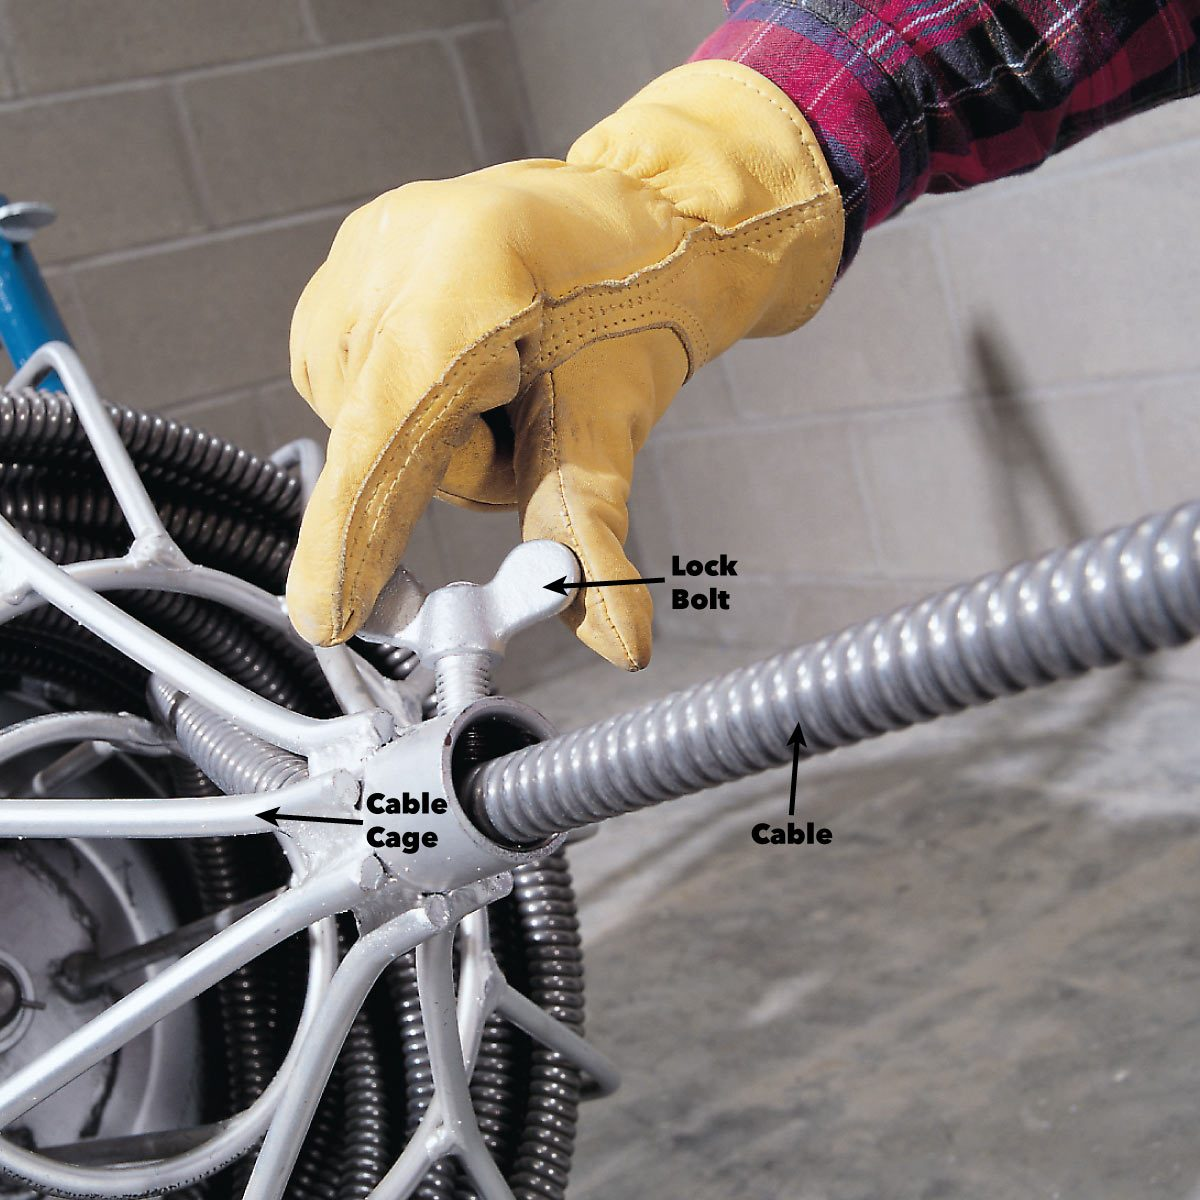 Operating a drain-cleaning machine